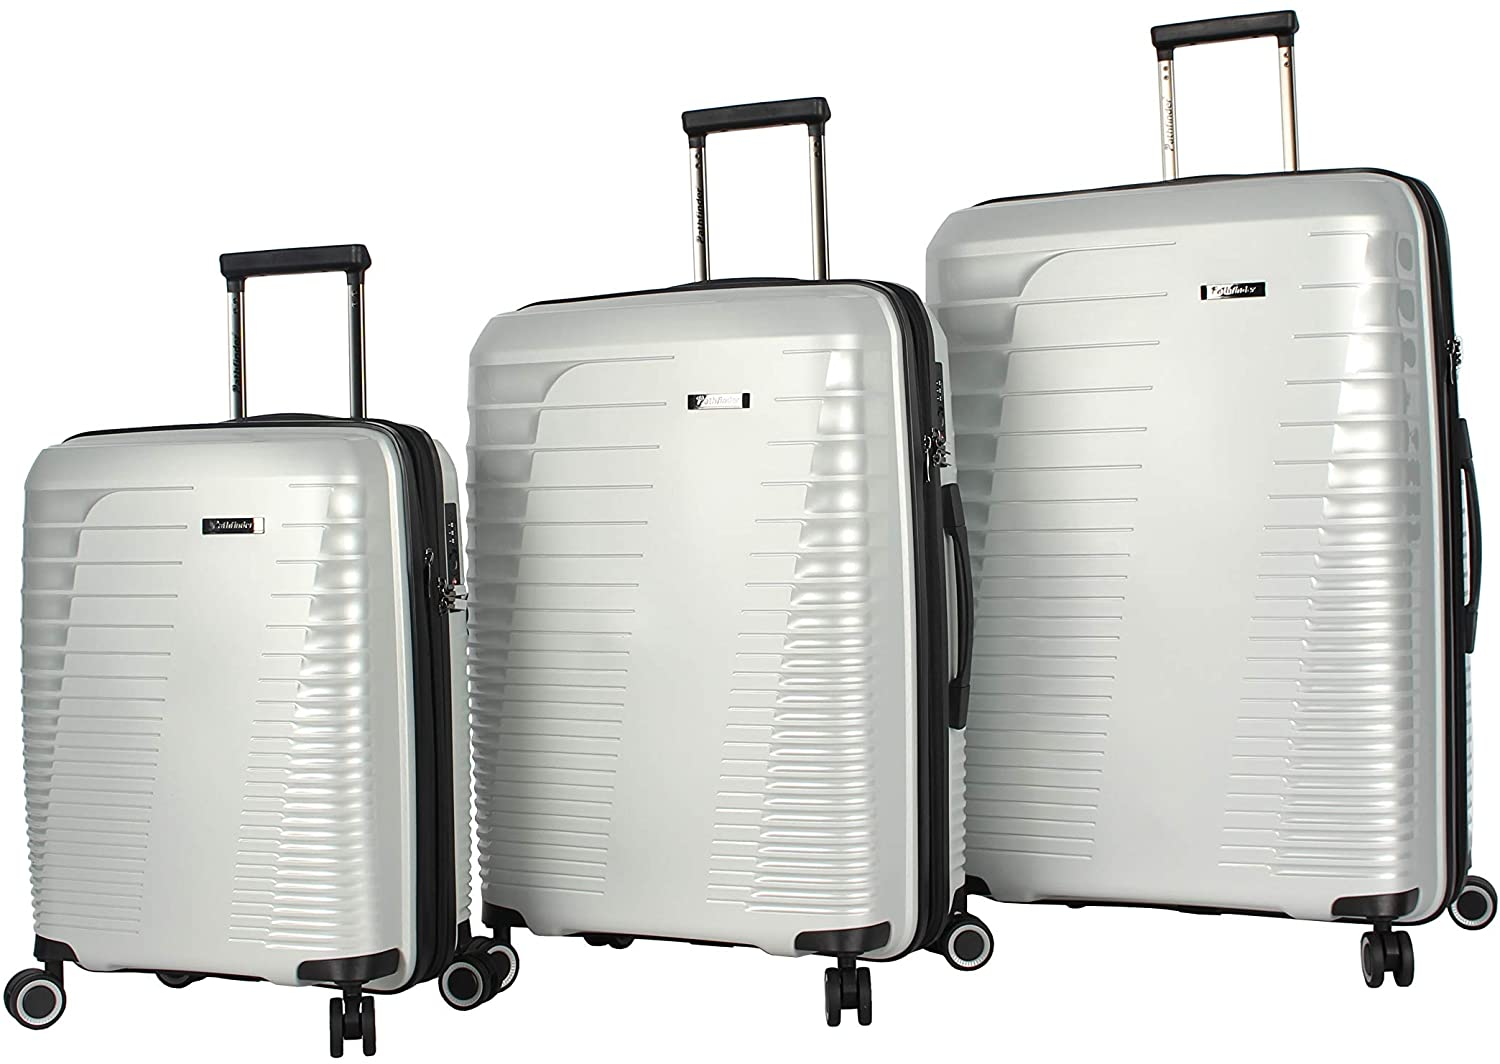 Pathfinder Nova Checked Luggage set 3 piece Collection - Expandable Scratch Resistant (ABS + PC) Hardside Suitcase 20/24/28 Inch - Designer Lightweight Bag with 8-Rolling Spinner Wheels